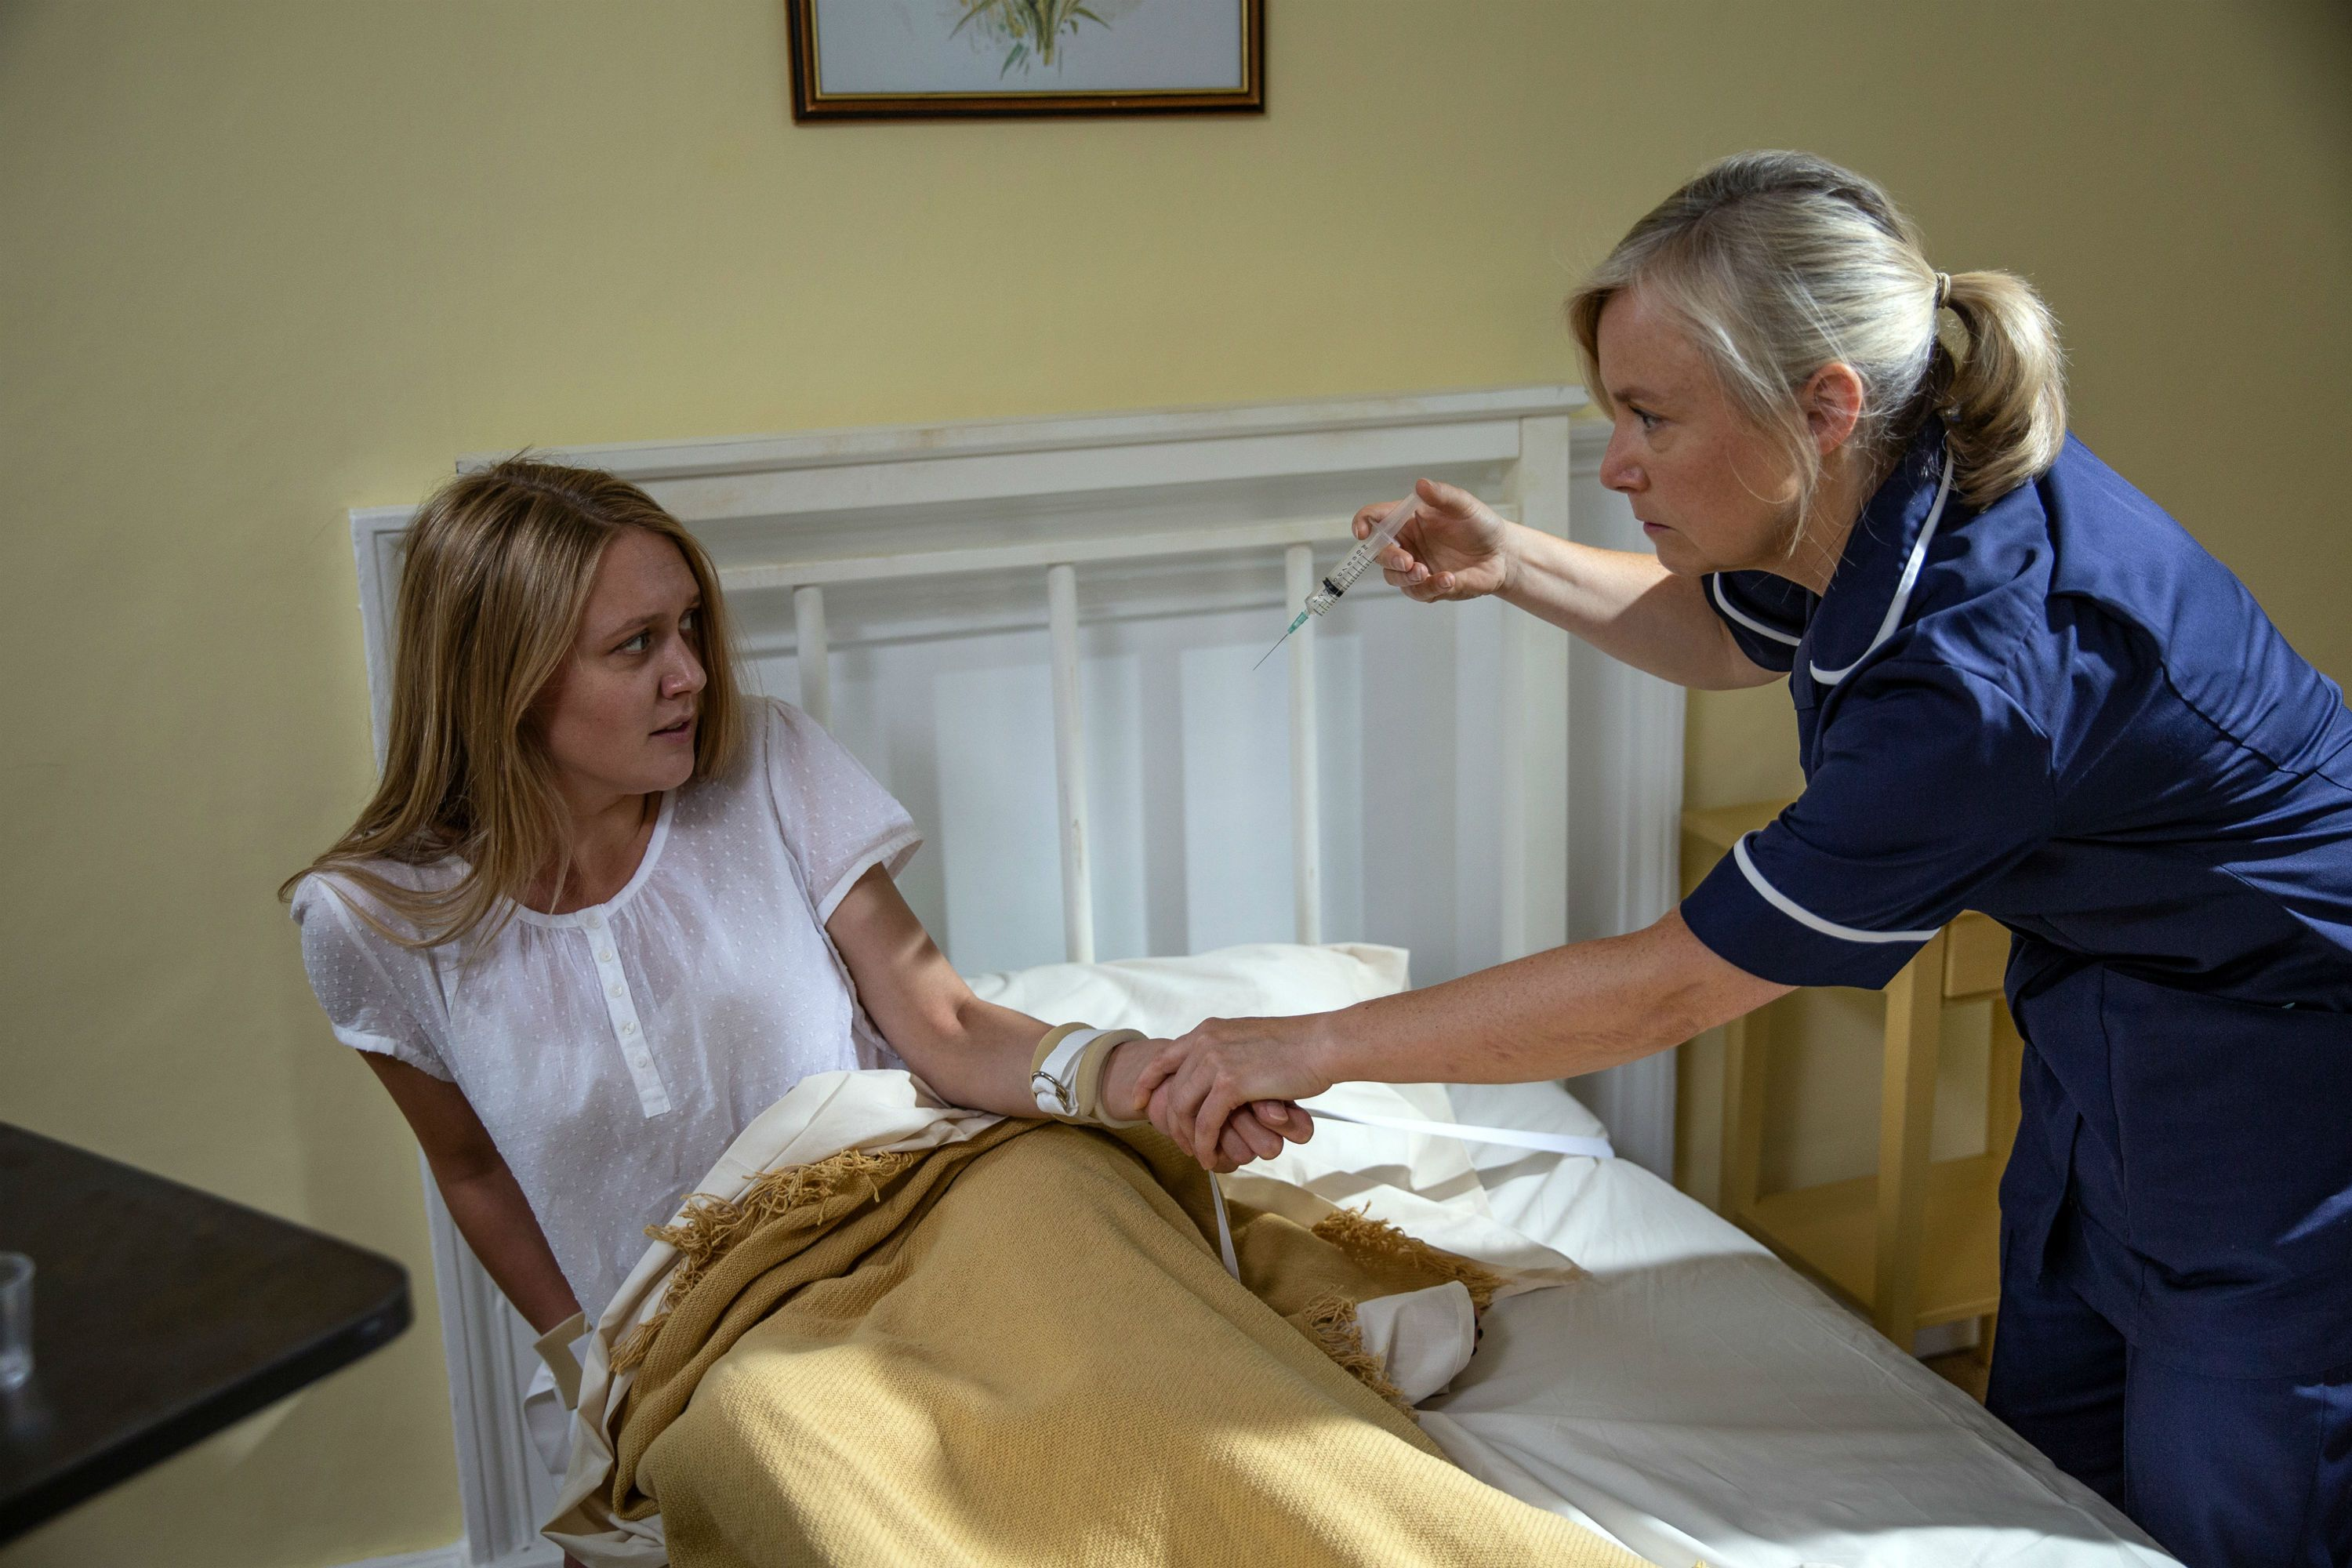 Rebecca White with the nurse in Emmerdale